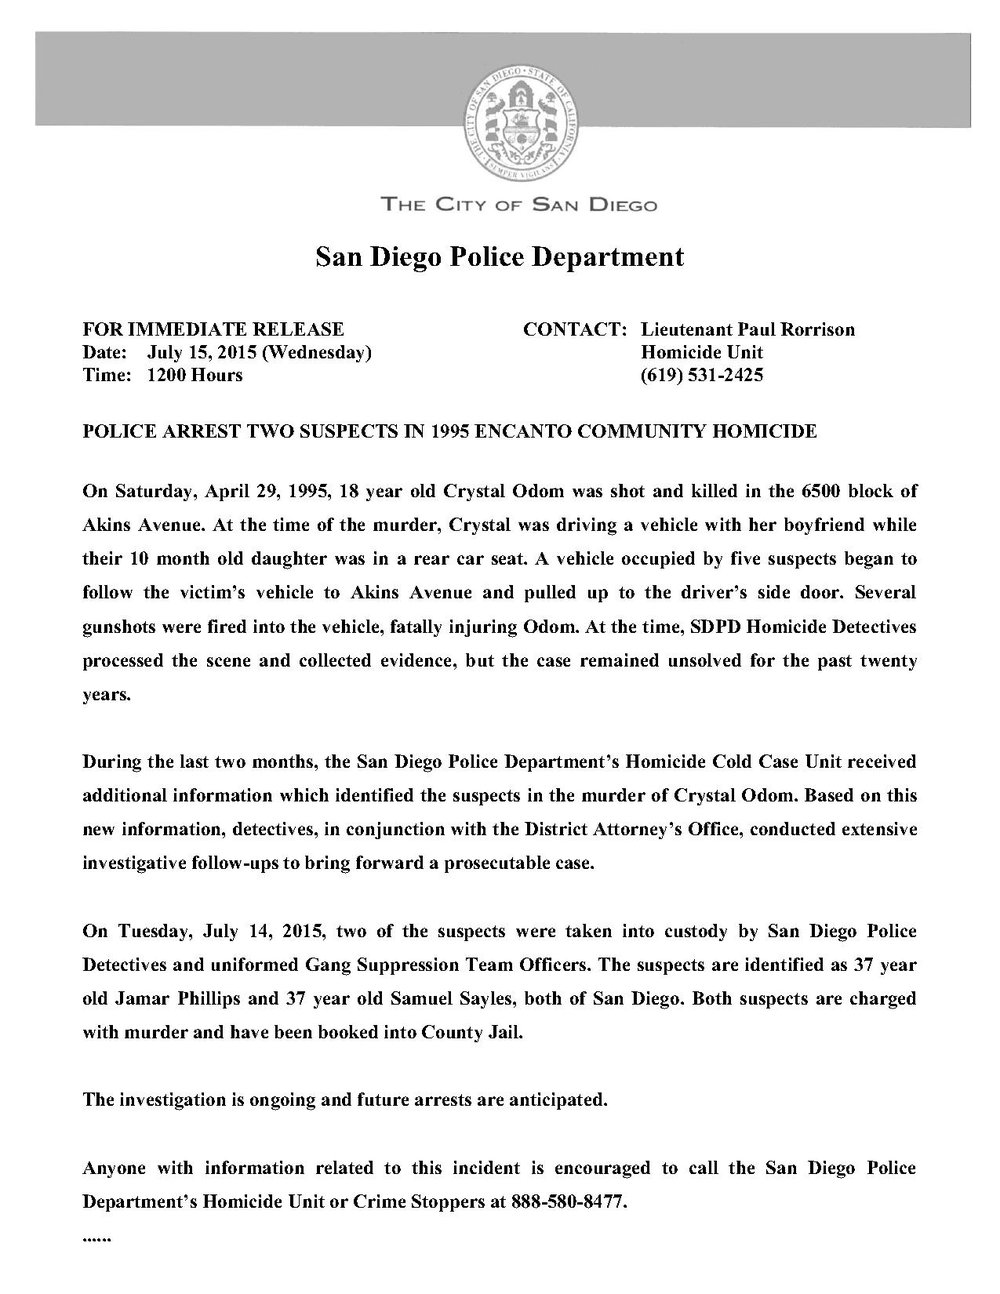 Press Release 7-15-15 Odom Cold Case arrests_1